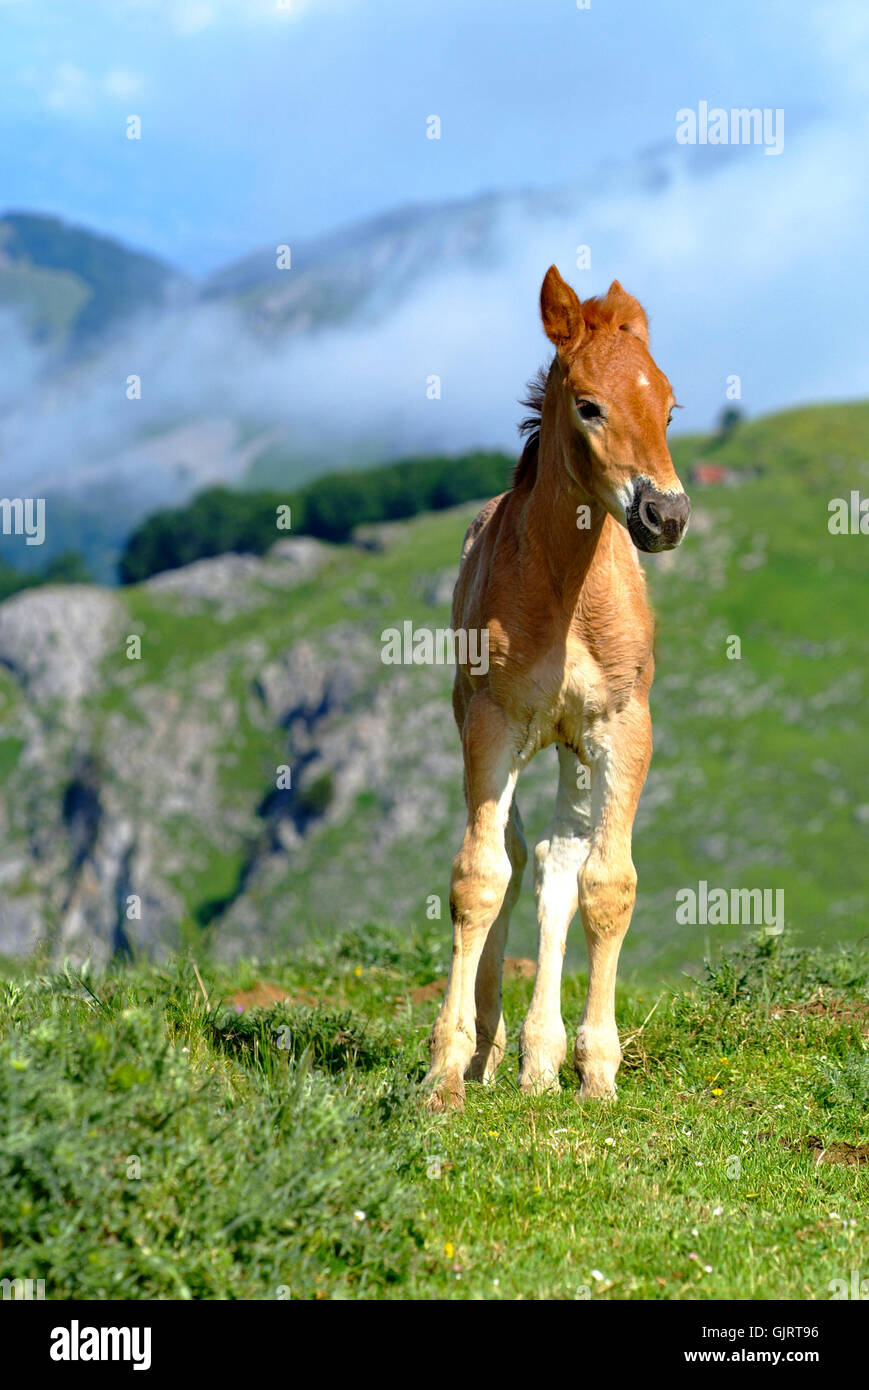 Tendresse cheval colt Photo Stock